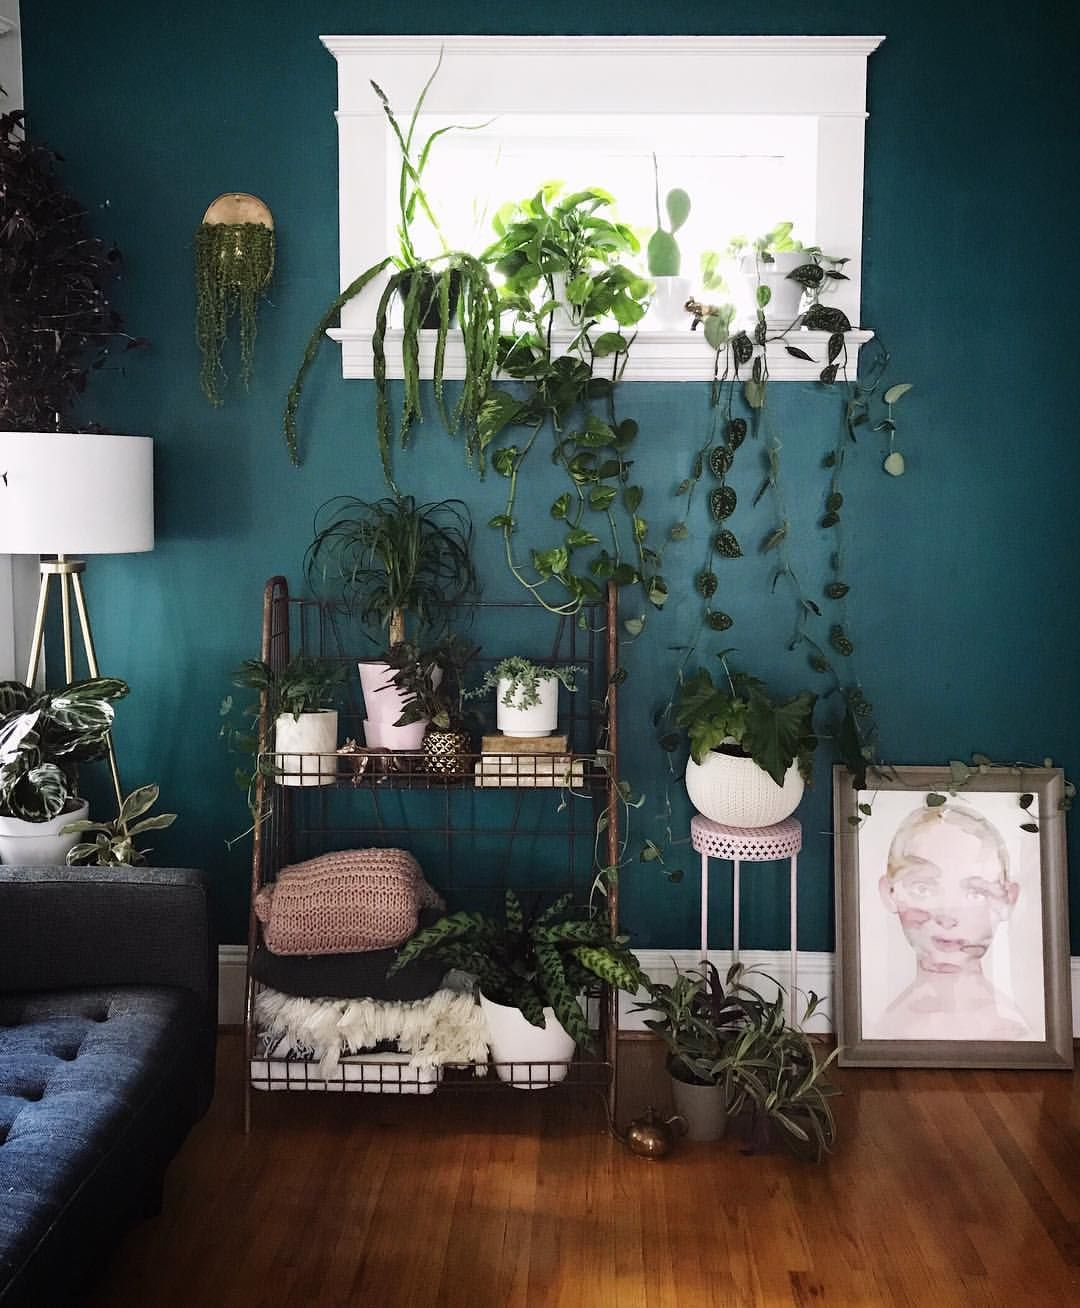 Behr Dining Room Colors: Paint Color Is Behr Verdant Forest. I Want This To Be My